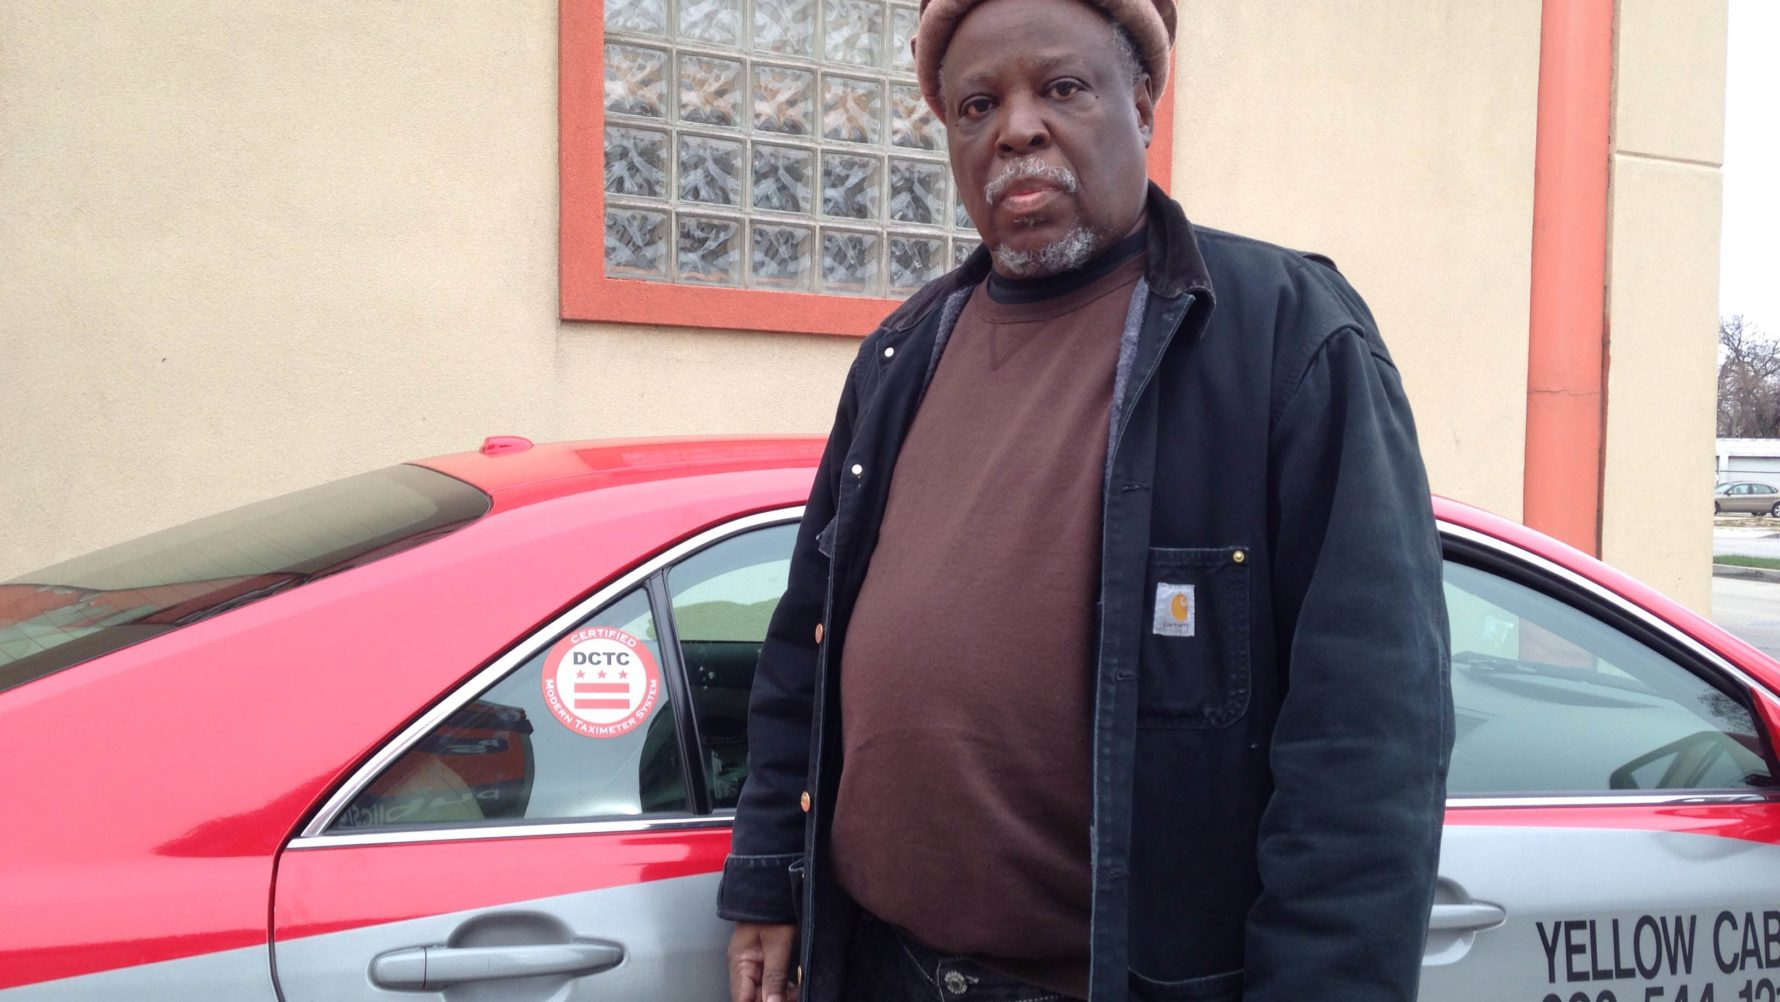 d.c. taxi drivers accuse police of harassment in barrage of tickets